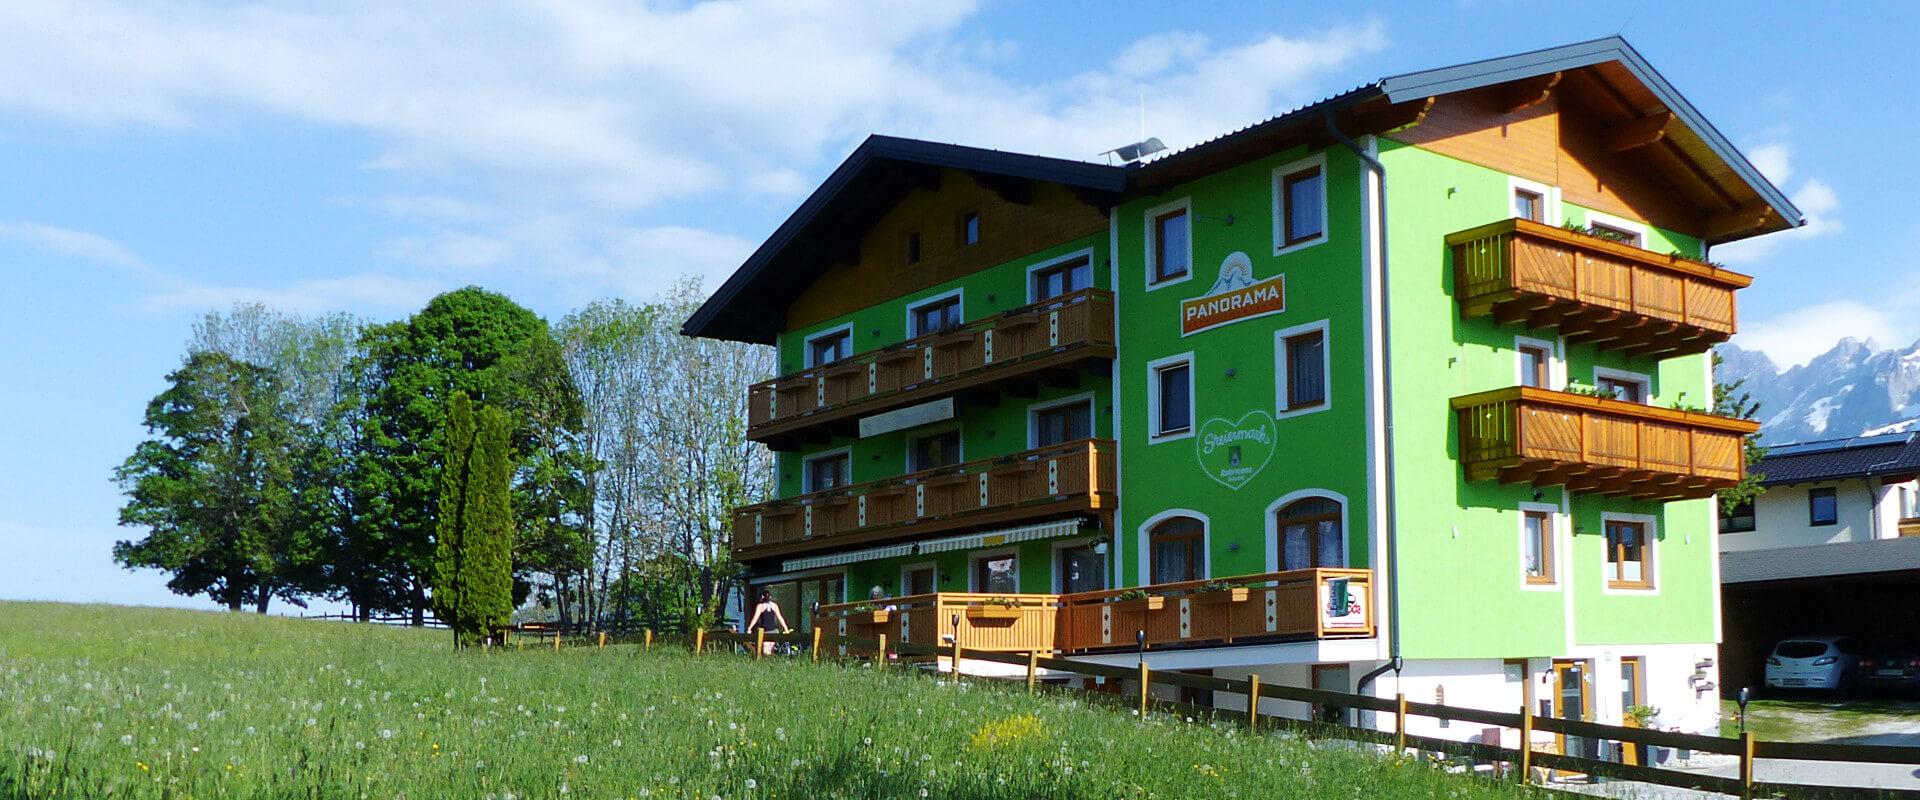 Appartementhaus in Schladming-Rohrmoos